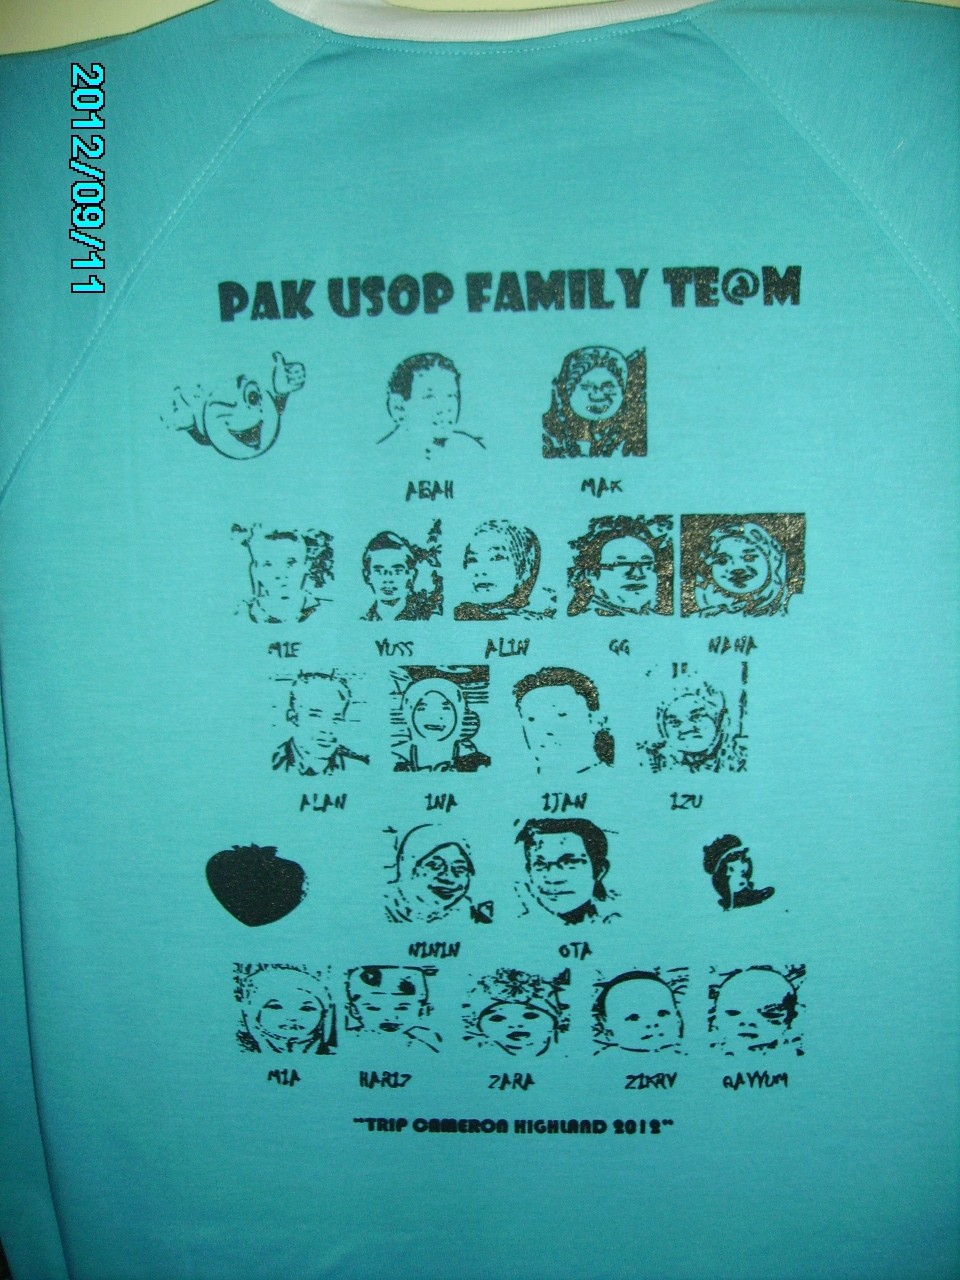 Contoh design t shirt family day - Baju Family Day